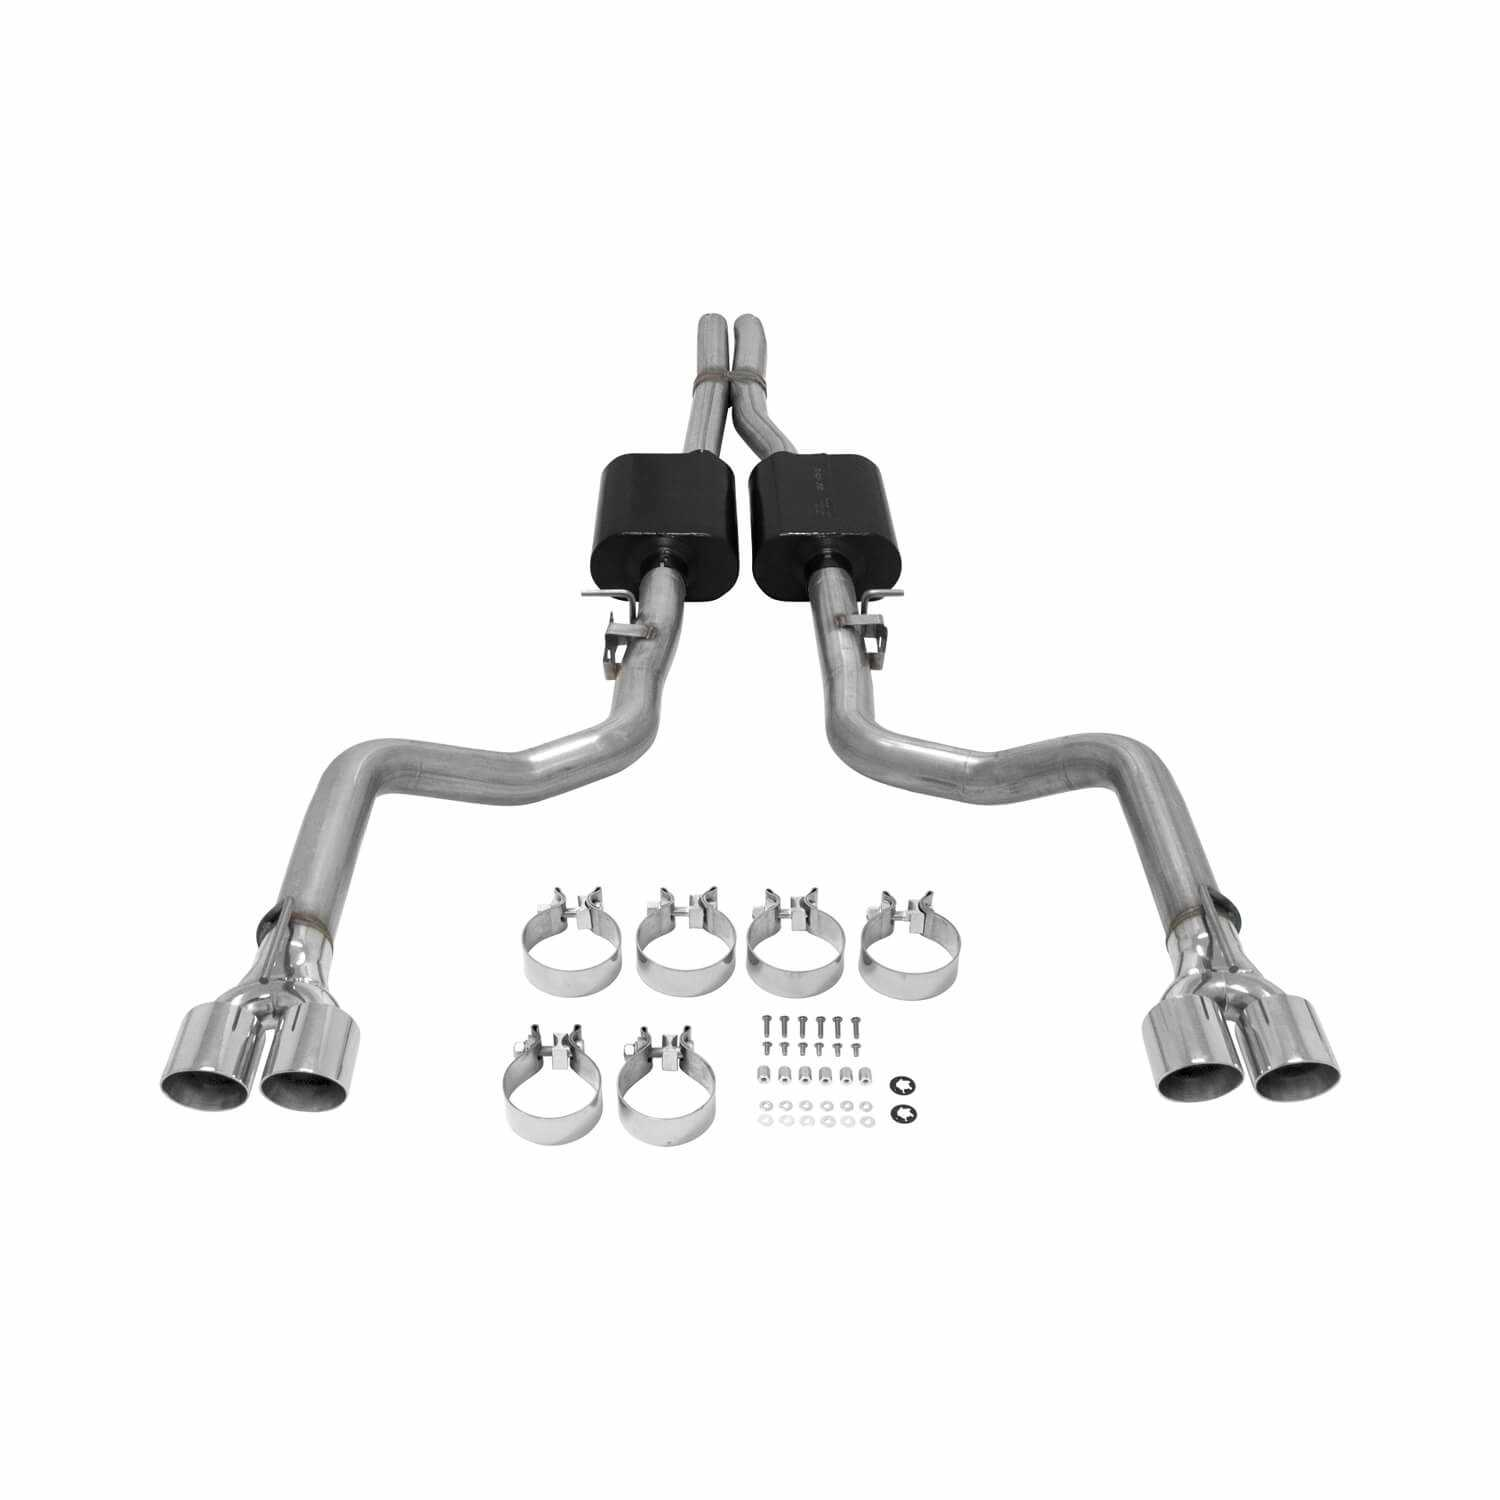 817739 Flowmaster American Thunder Cat Back Exhaust System